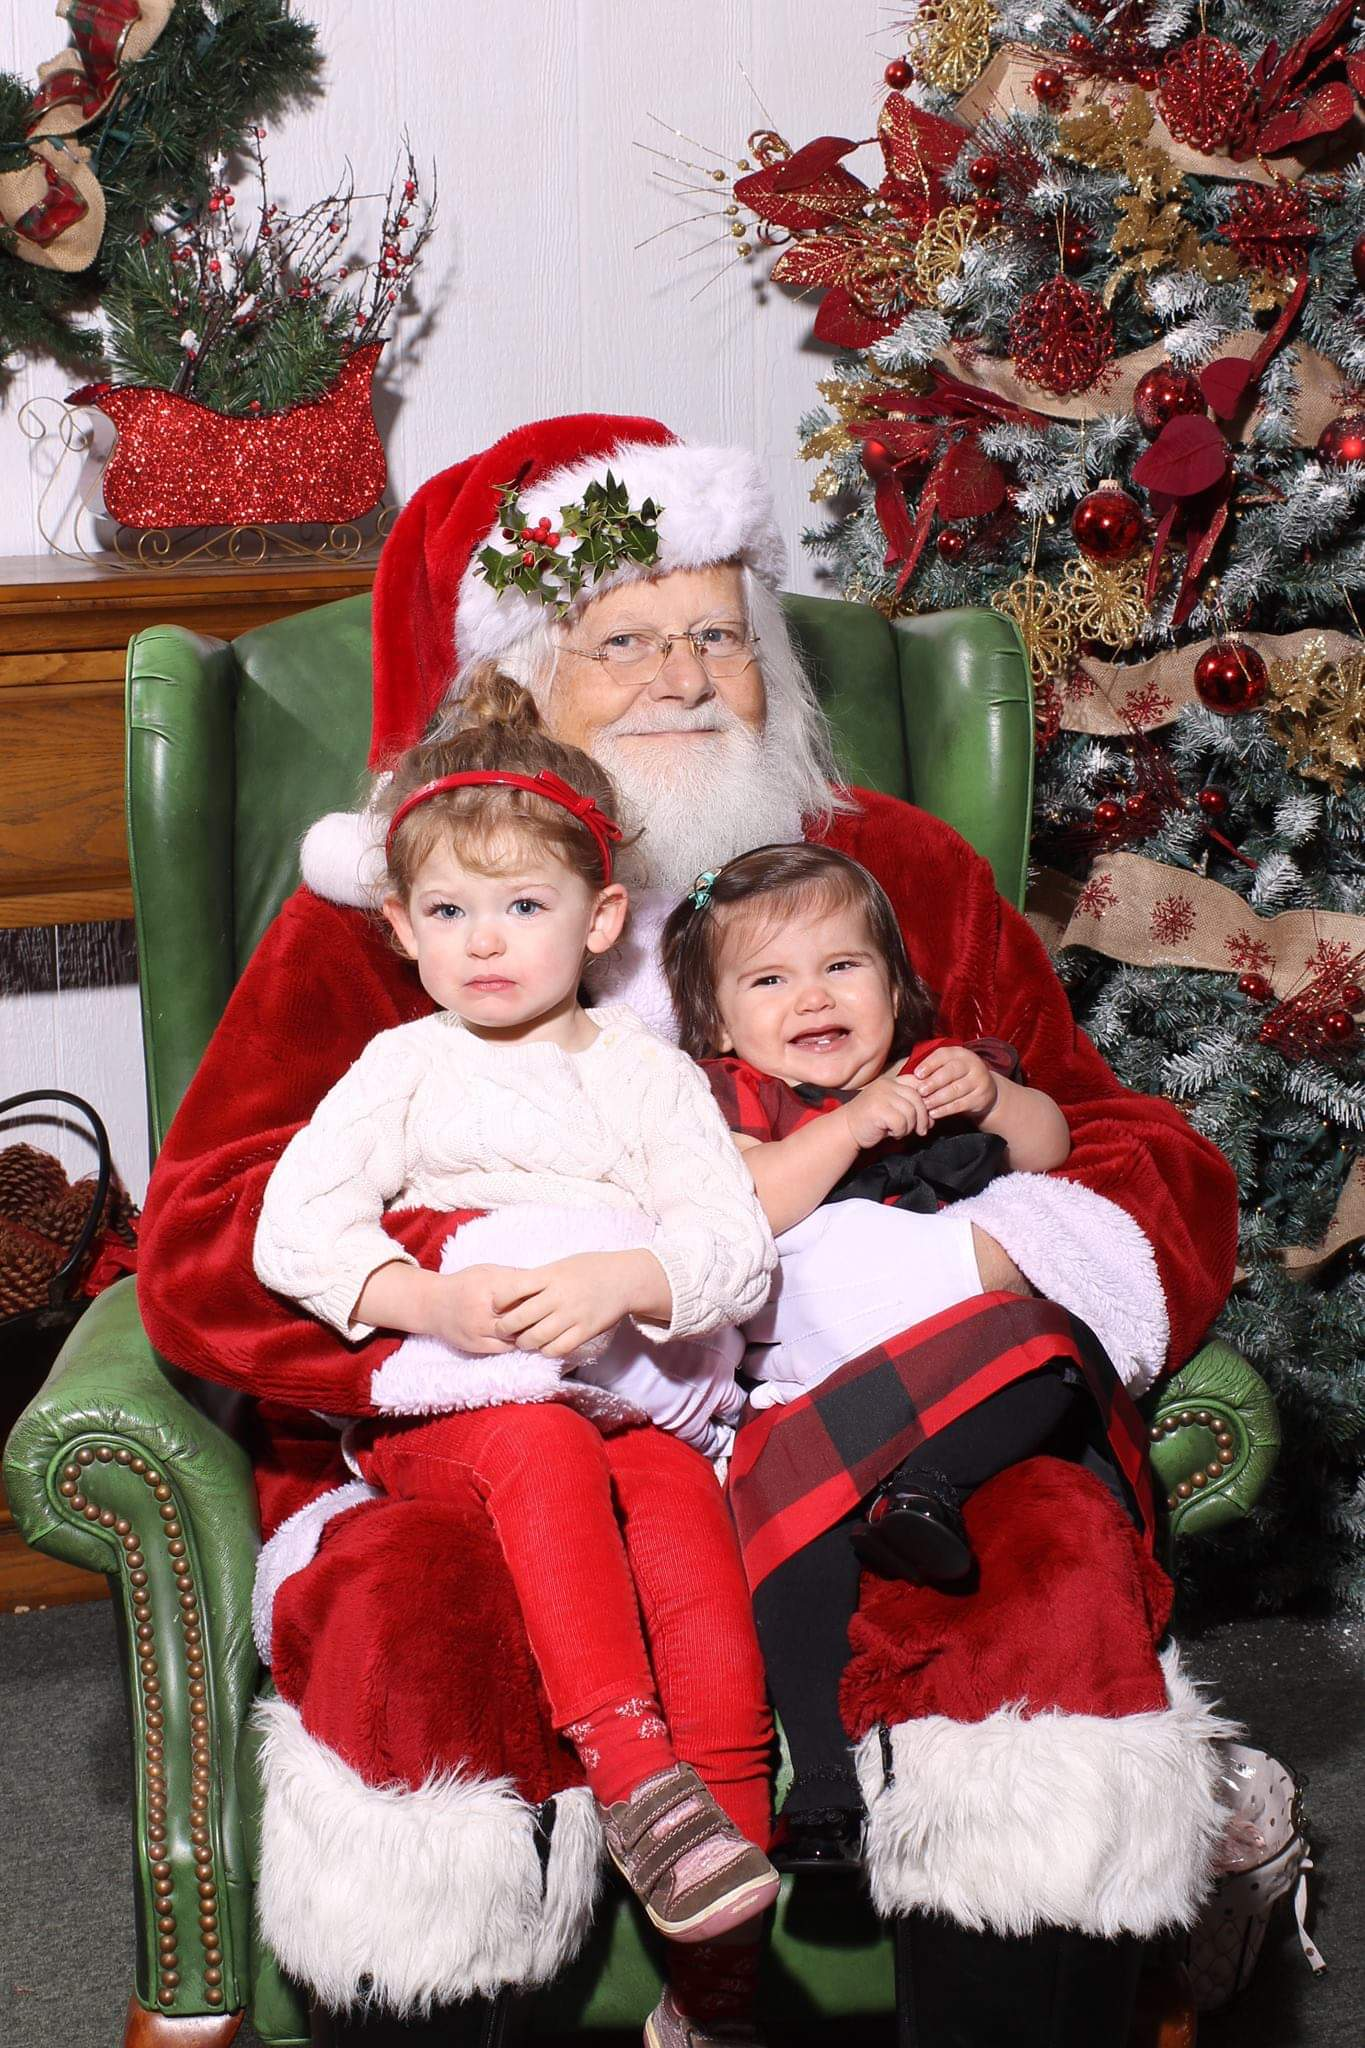 Ah, Santa Claus - the glorious bearded man in the big red suit who fulfills our kiddos holiday dreams and wishes.  Also doubling as, apparently, the scariest man alive. Grab a glass of eggnog, sit back and feast your eyes on these Santa pics gone wrong - or as I call them...realistic Santa pics. (Image: Megan and Brian Harrington)<p></p>